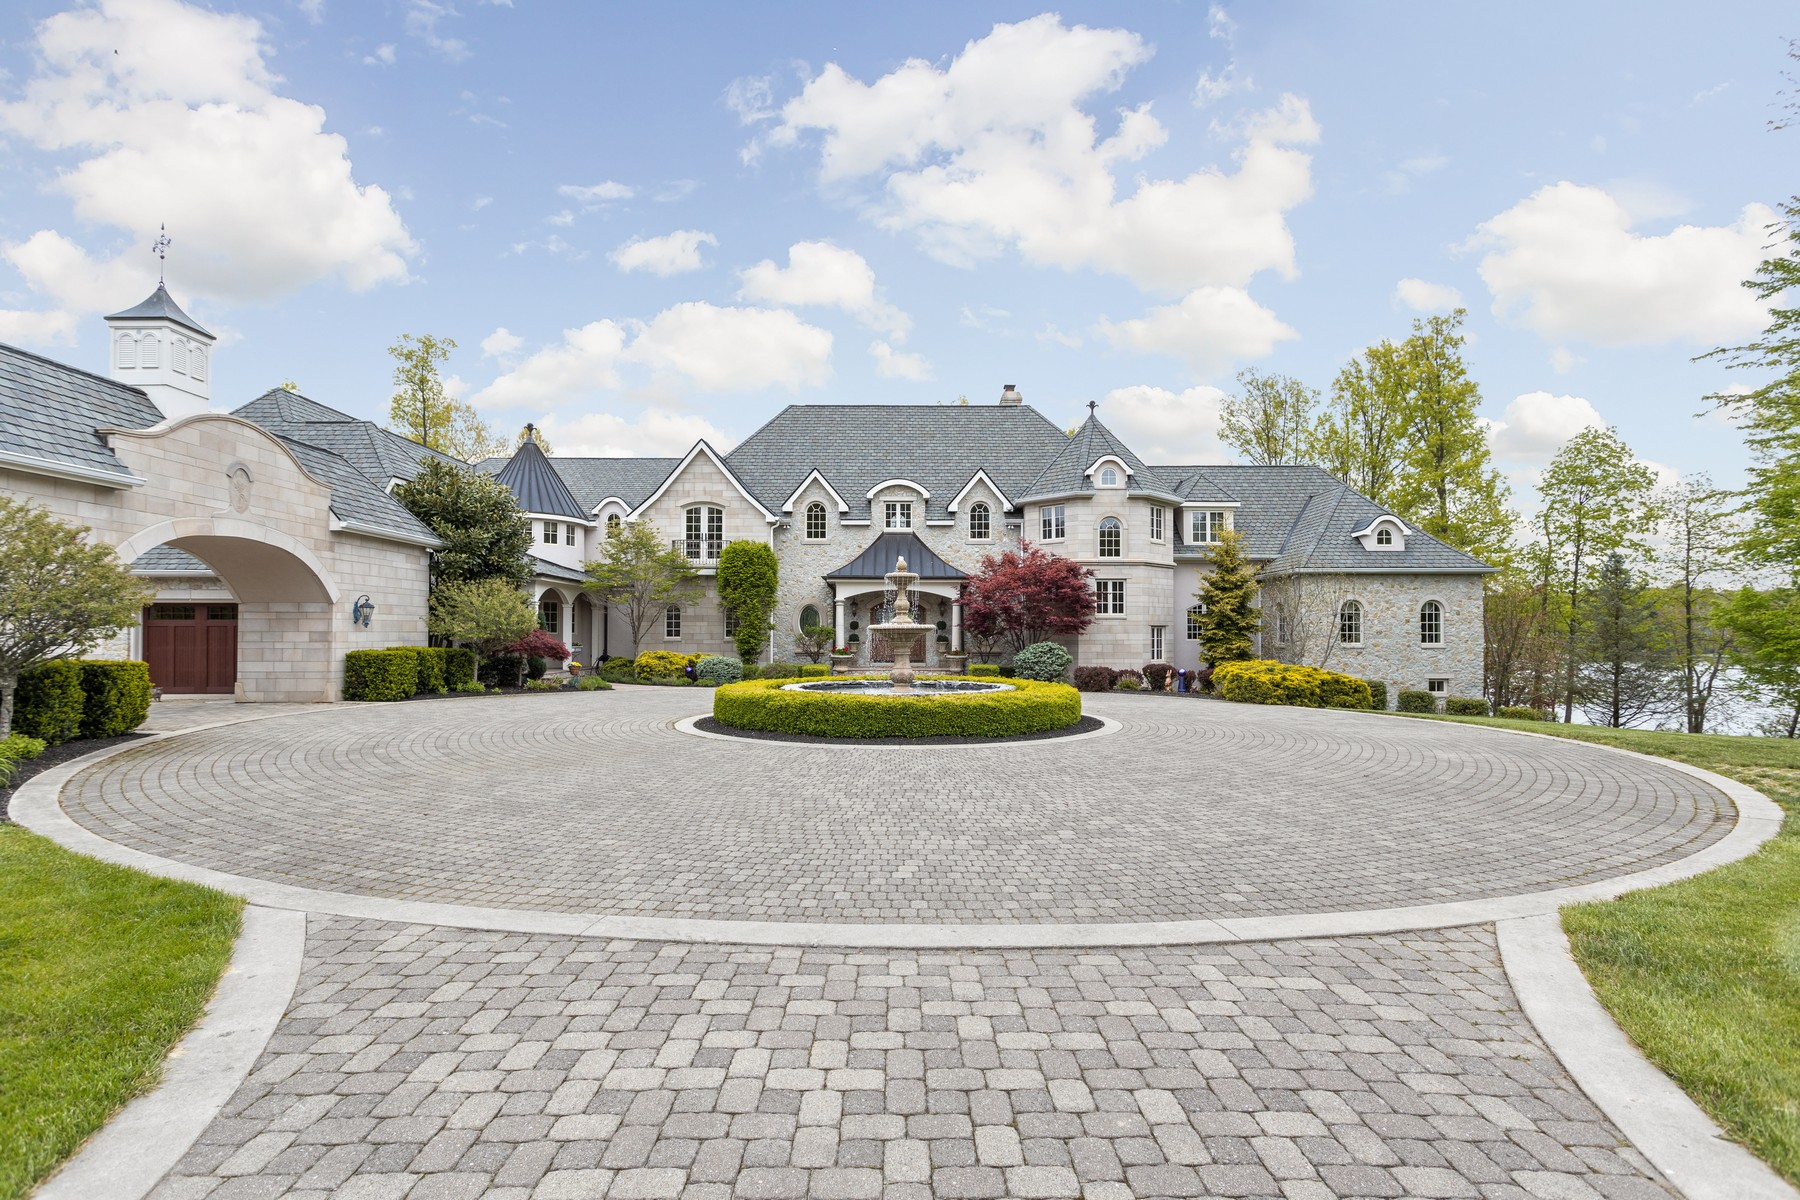 Single Family Homes for Active at Stunning Estate 13198 North County Road 400 E Batesville, Indiana 47006 United States